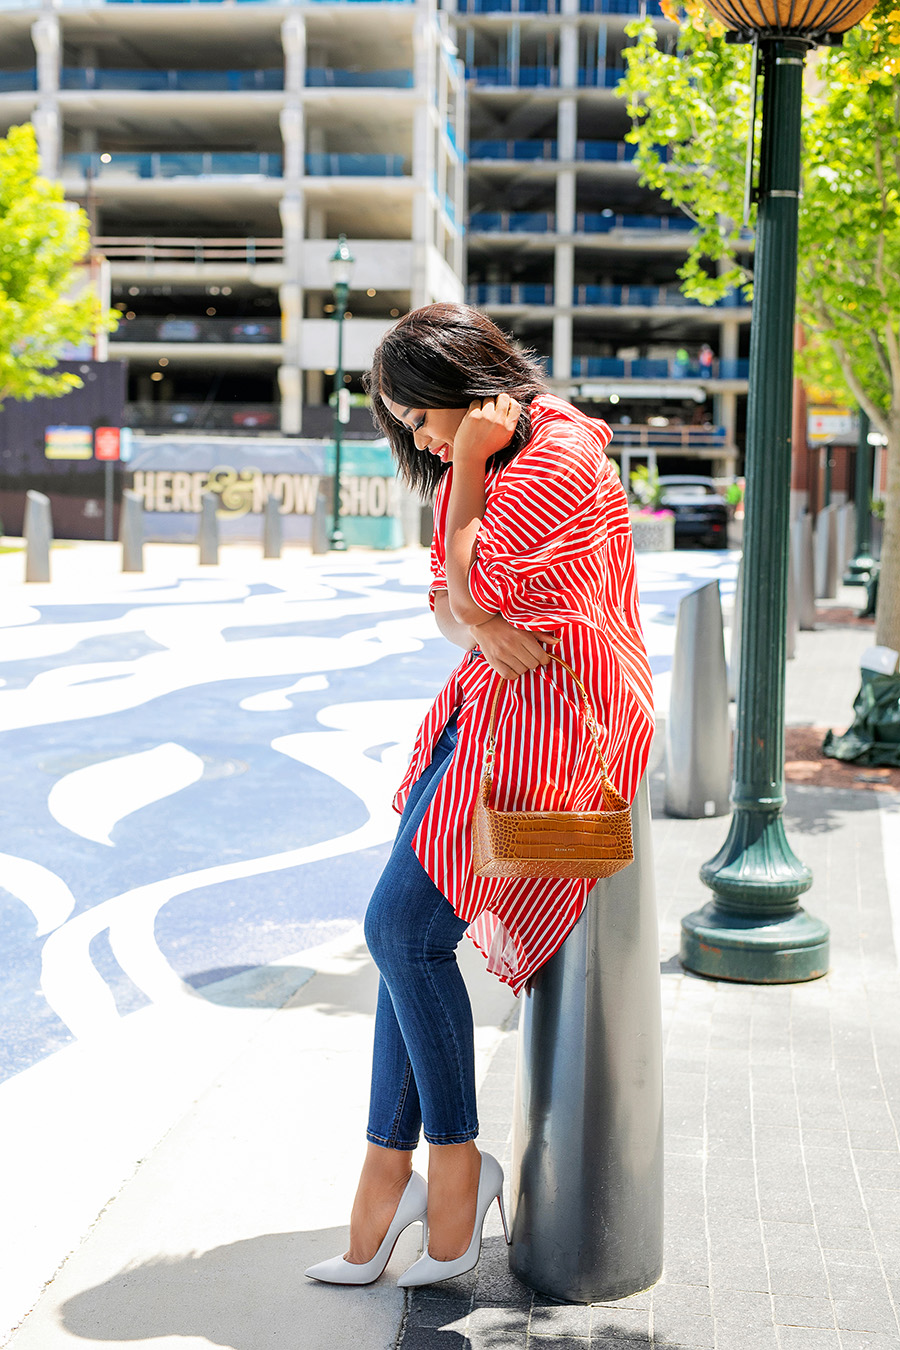 red and white long stripe shirt with blue jeans and white shoes for July fourth